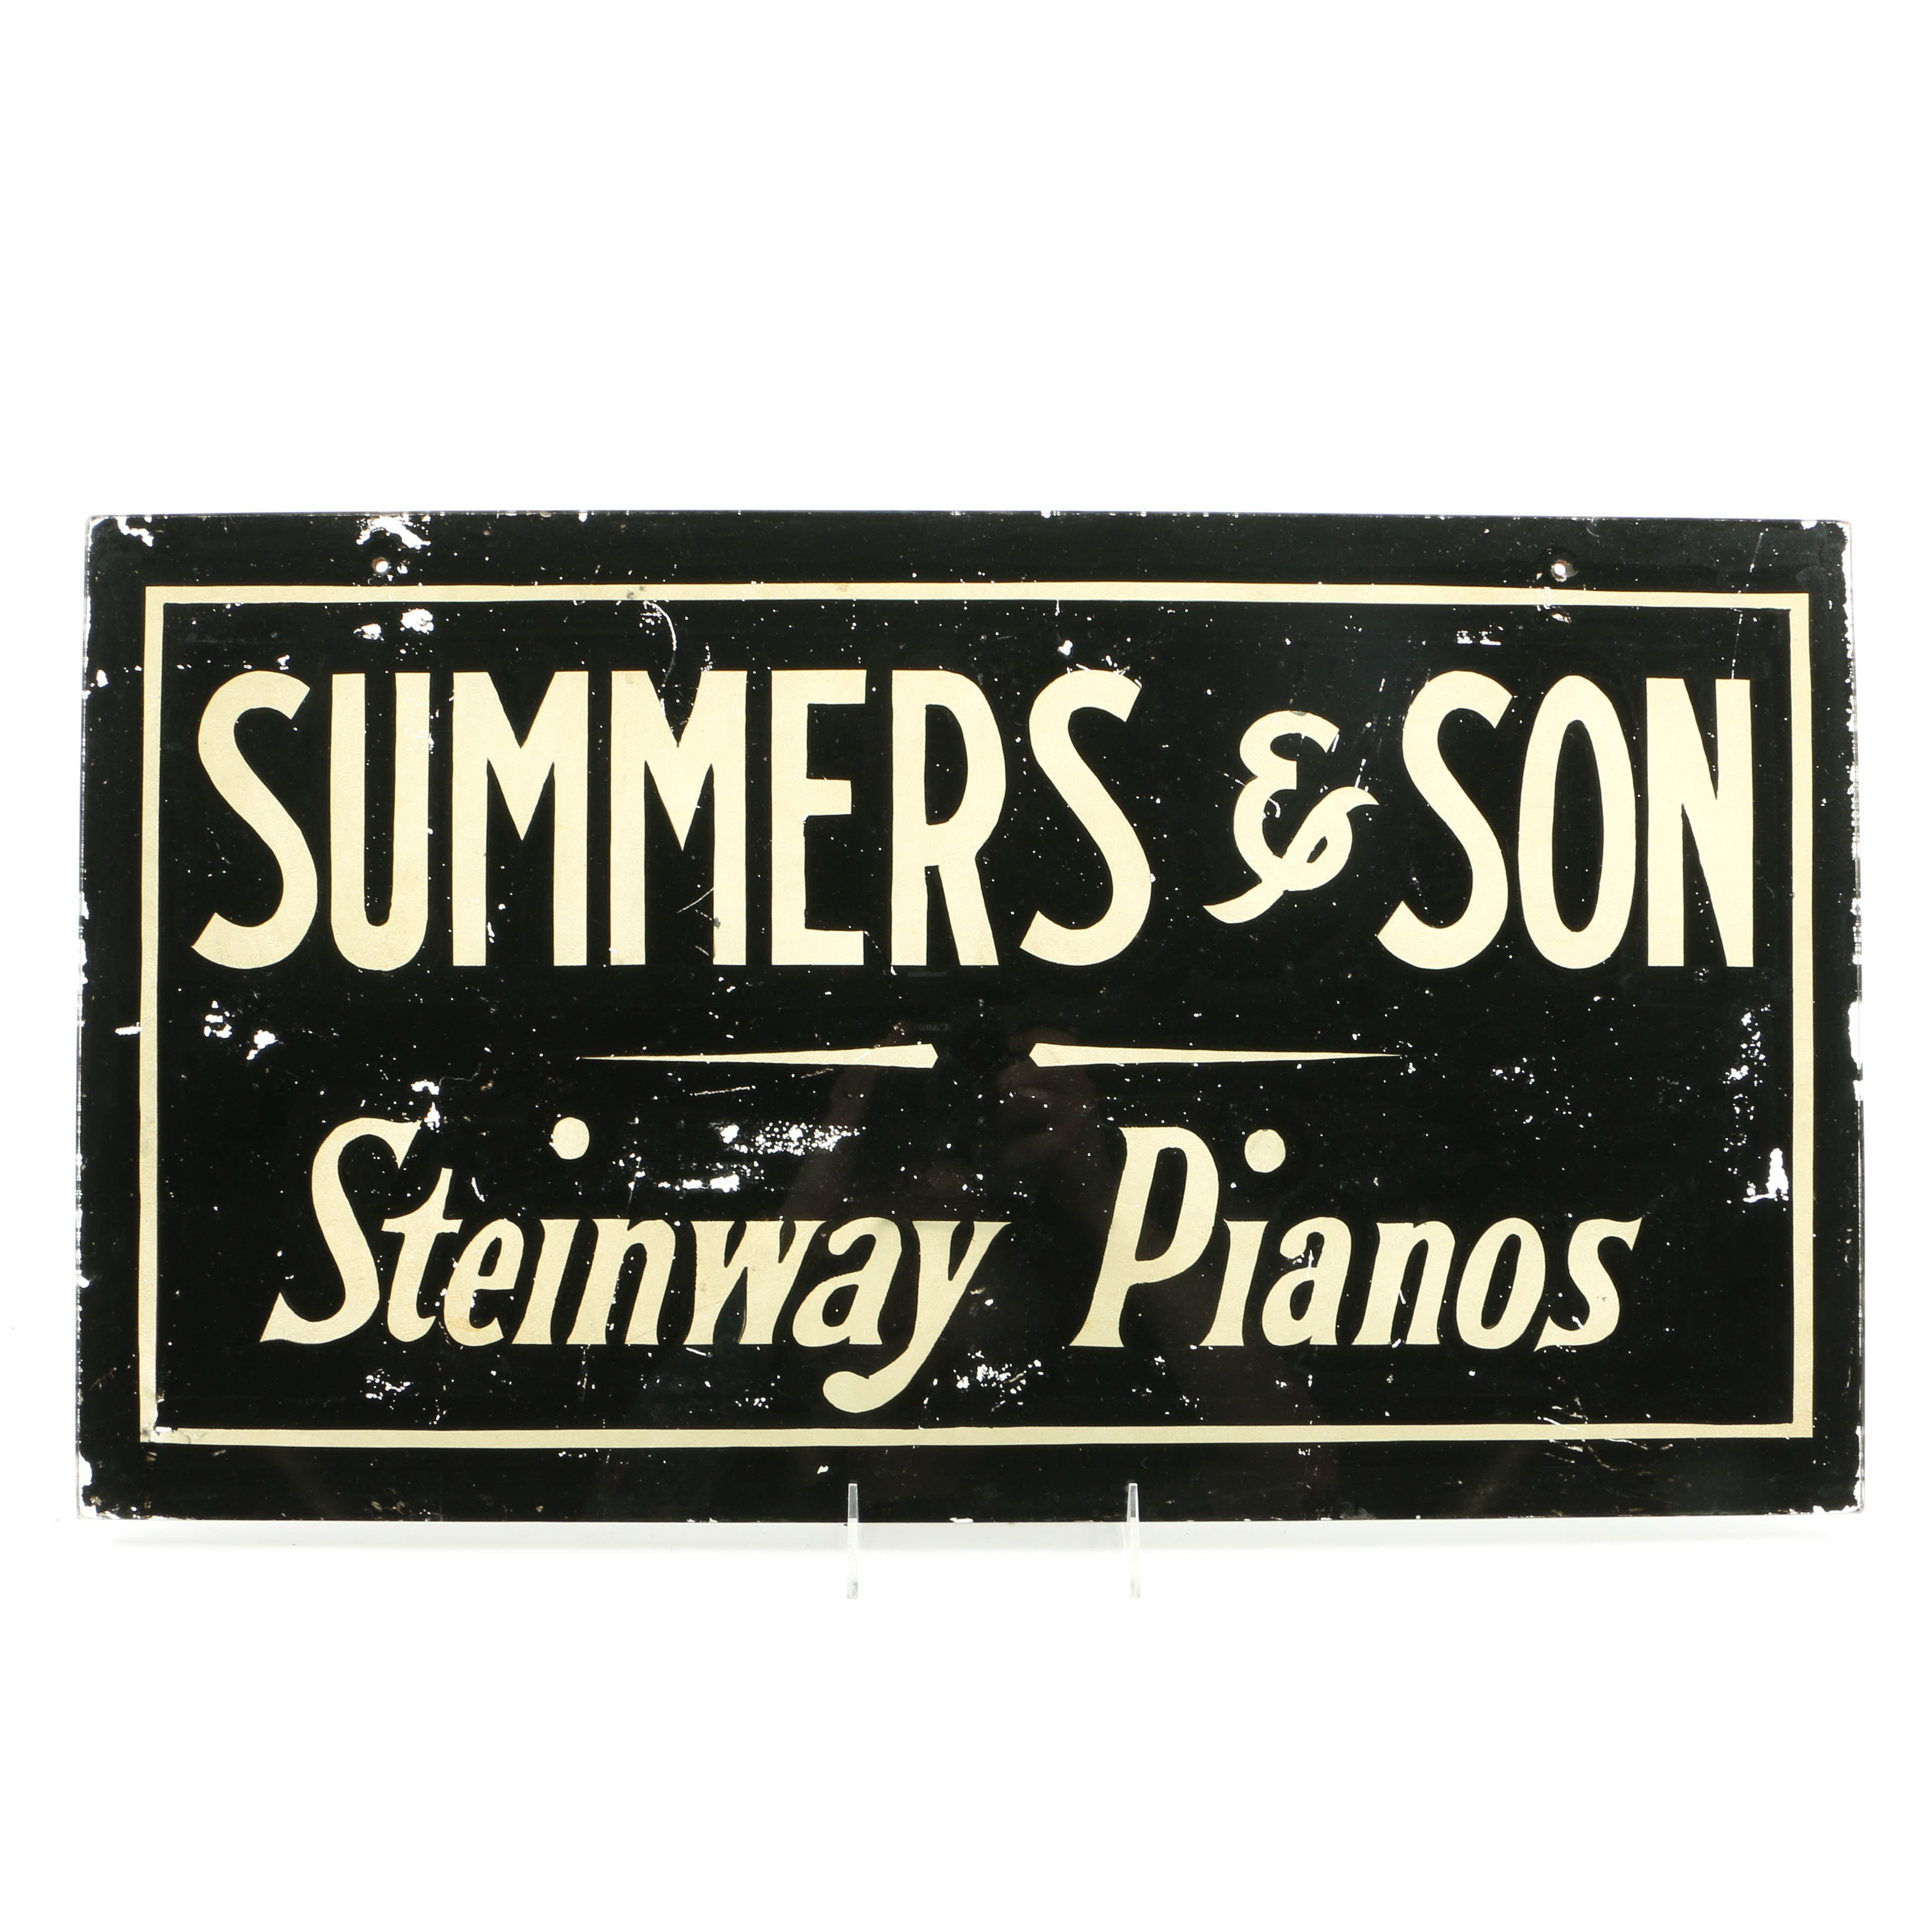 """Vintage Reverse-Painted """"Summers & Son Steinway Pianos"""" Glass Trade Sign"""